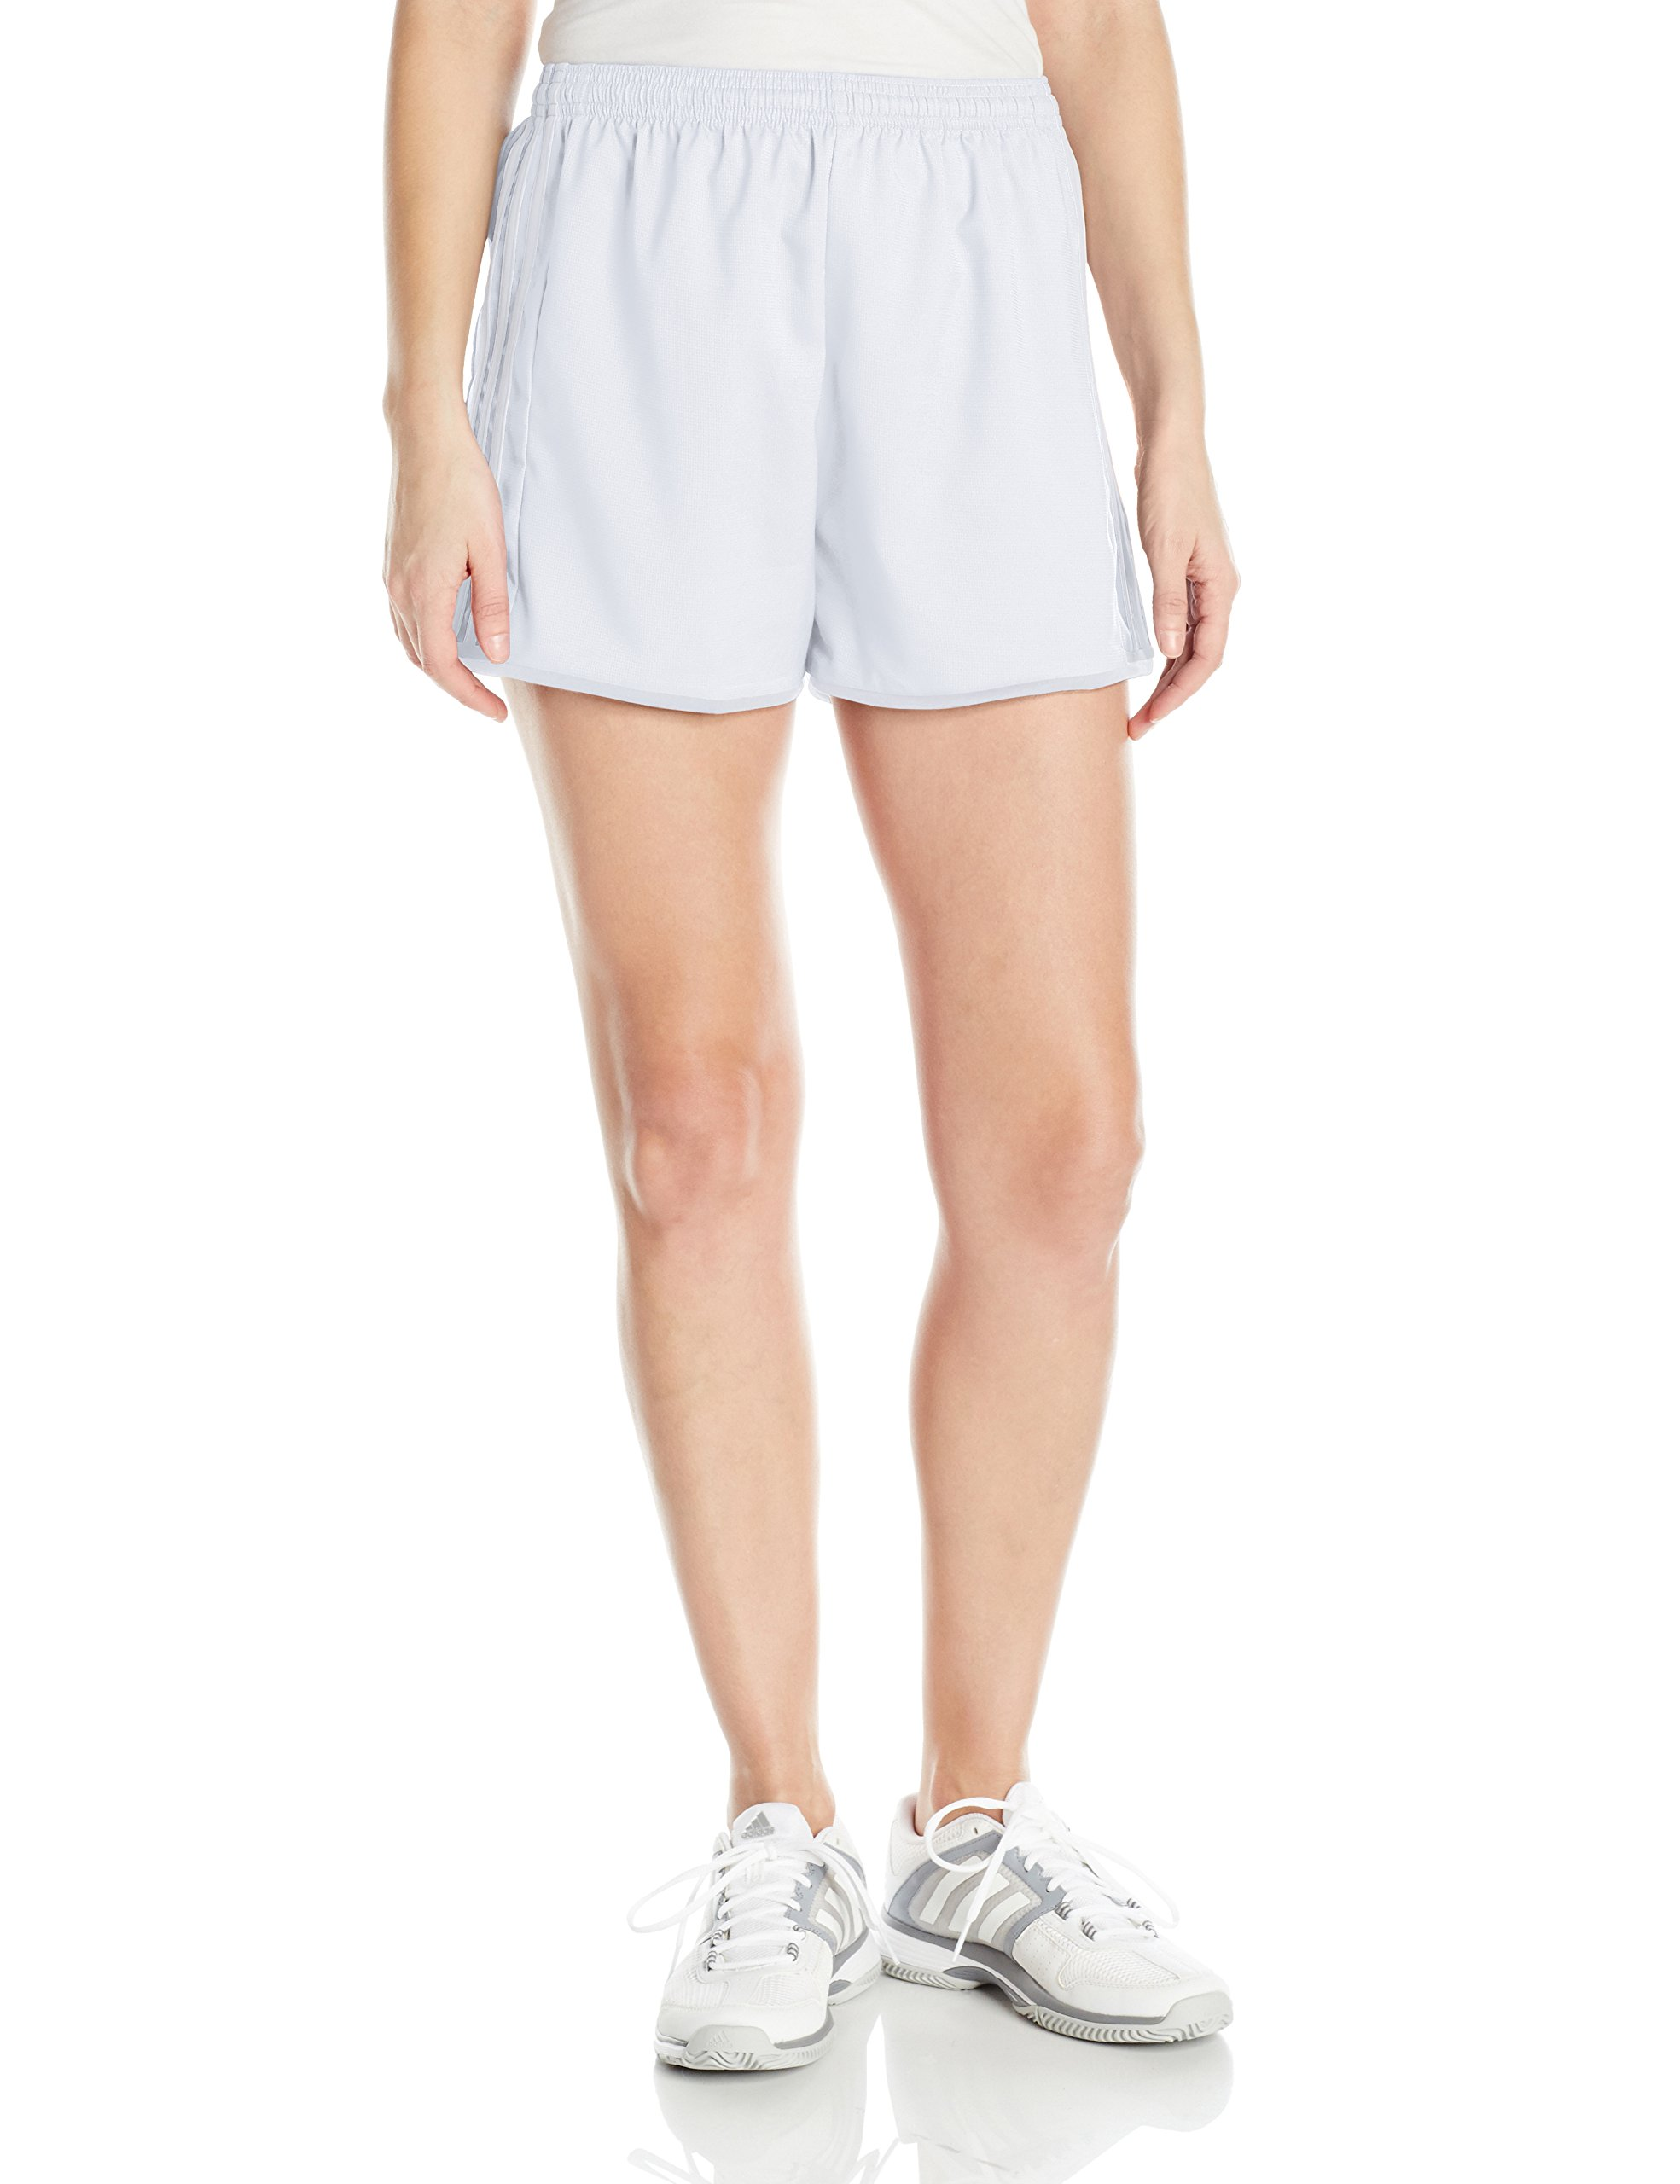 adidas Women's Soccer Condivo 16 Shorts, White/White, Medium